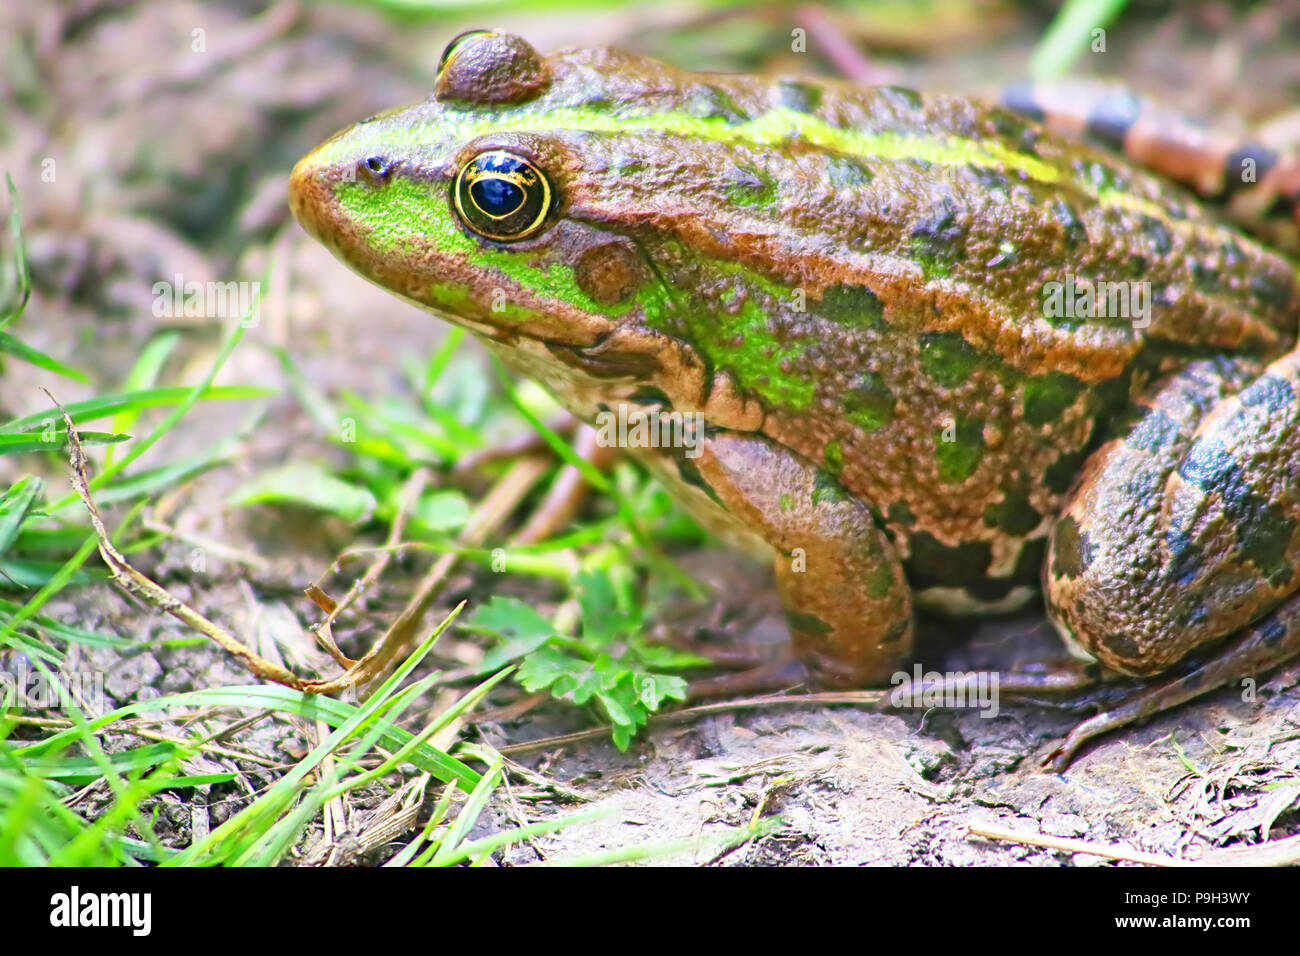 The marsh frog (Pelophylax ridibundus belongs to the family of true frogs) in the mud - Stock Image